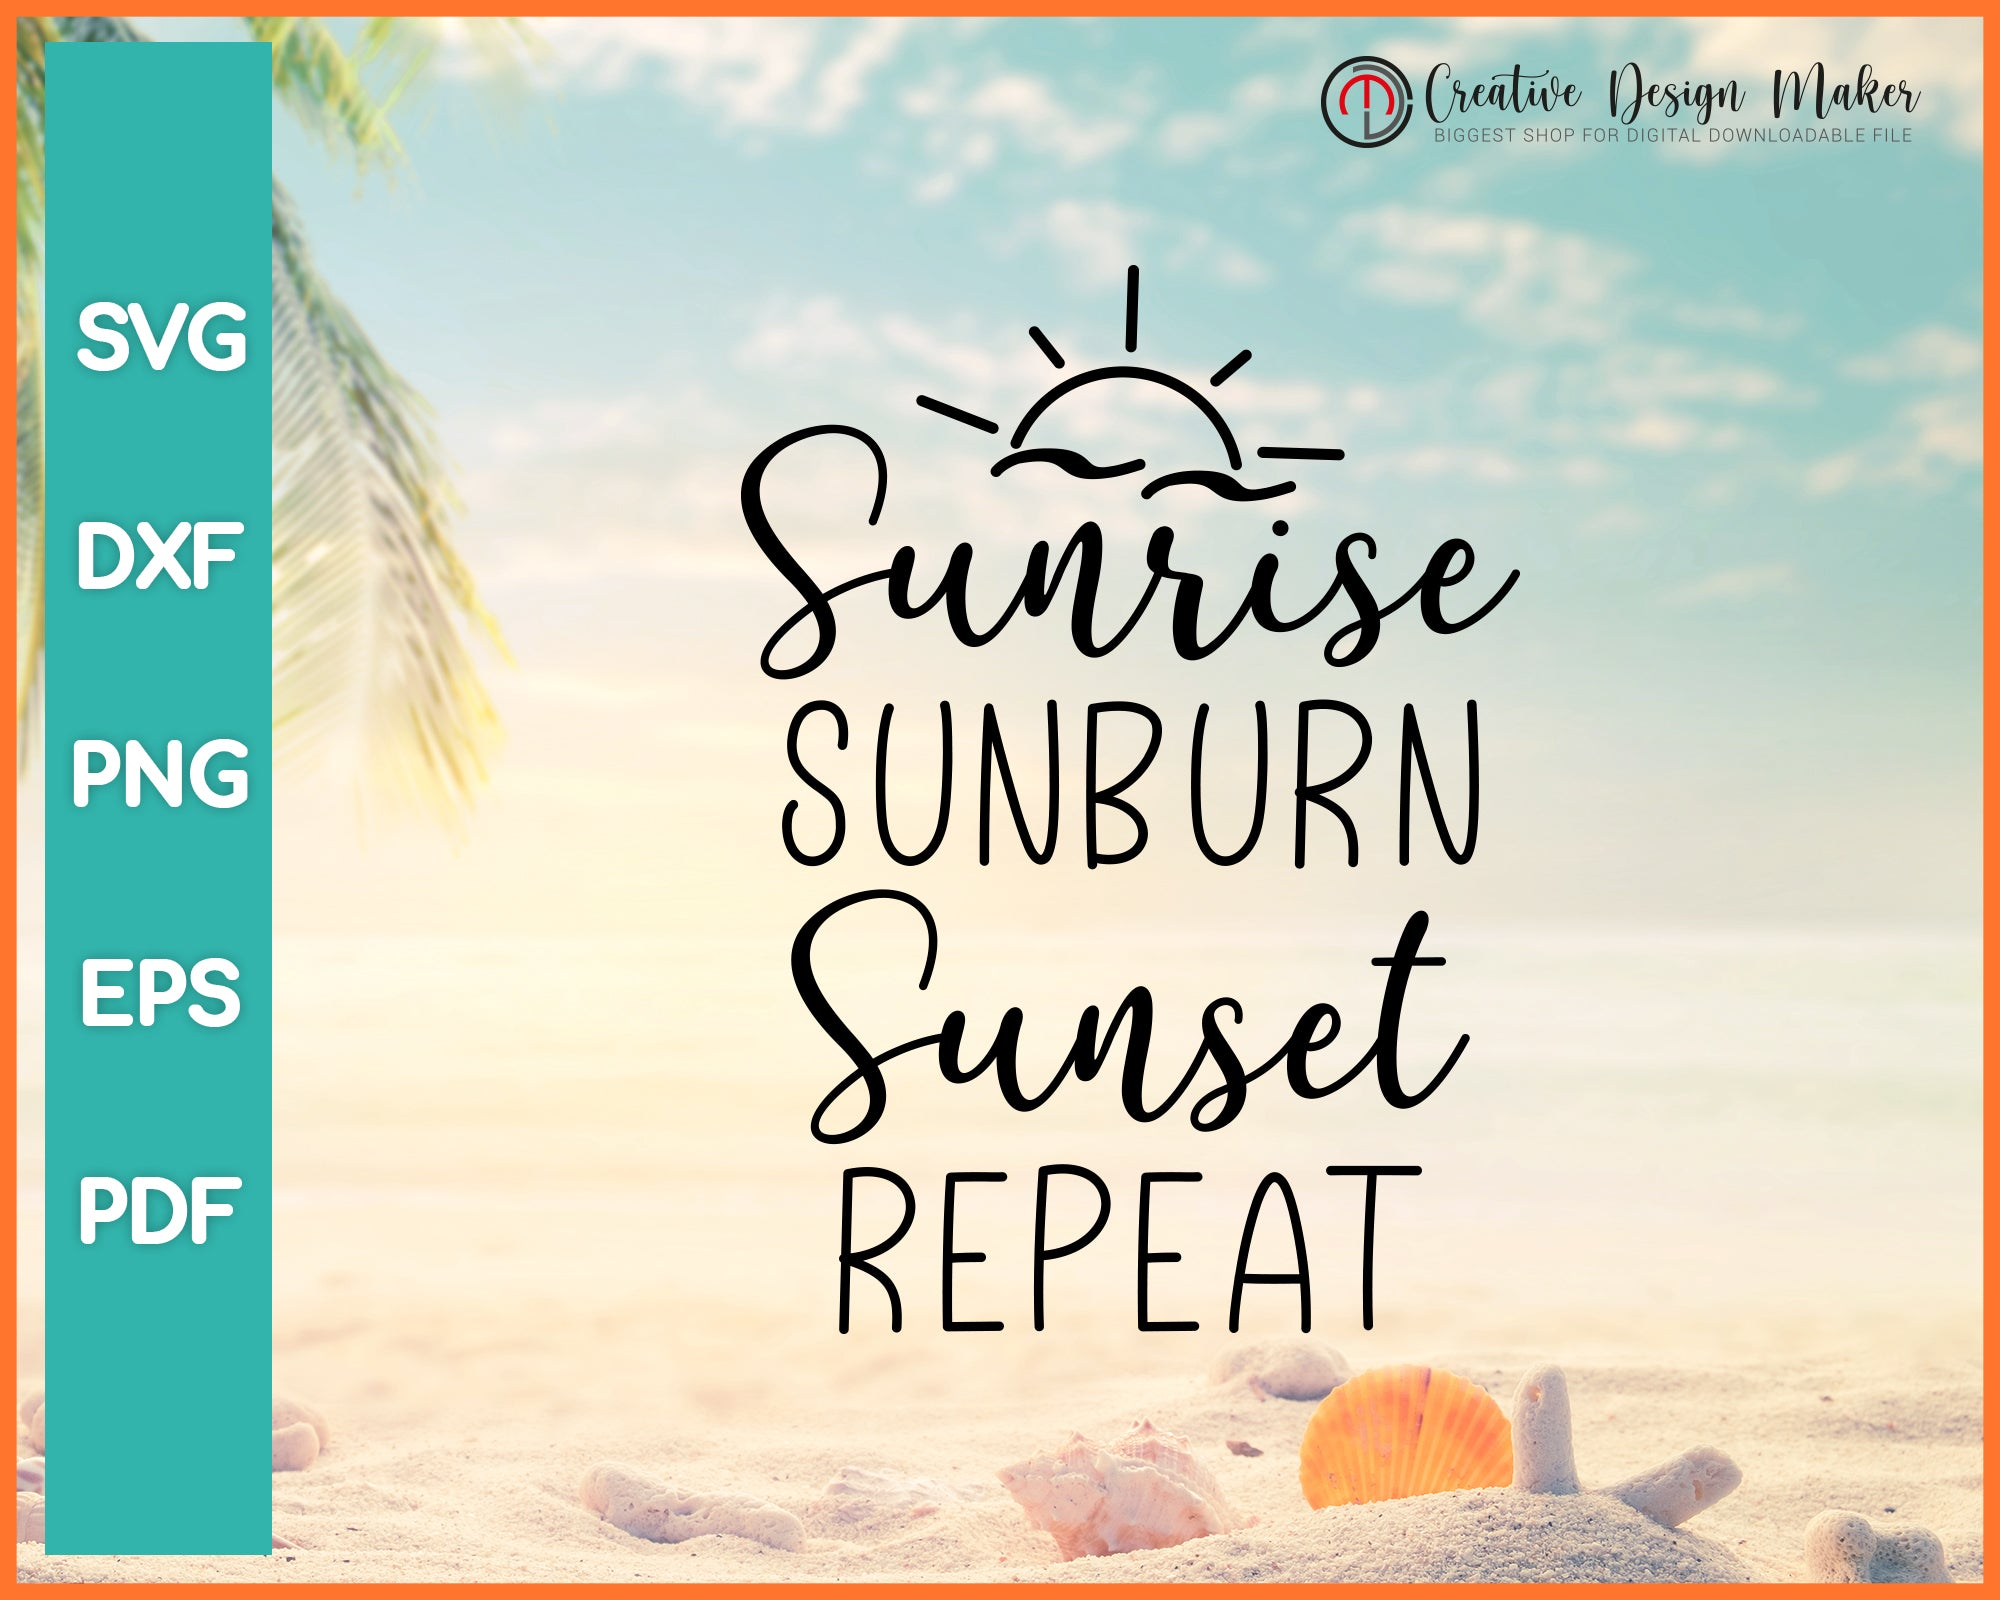 Sunrise Sunburn Sunset Repeat svg Designs For Cricut Silhouette And eps png Printable Files